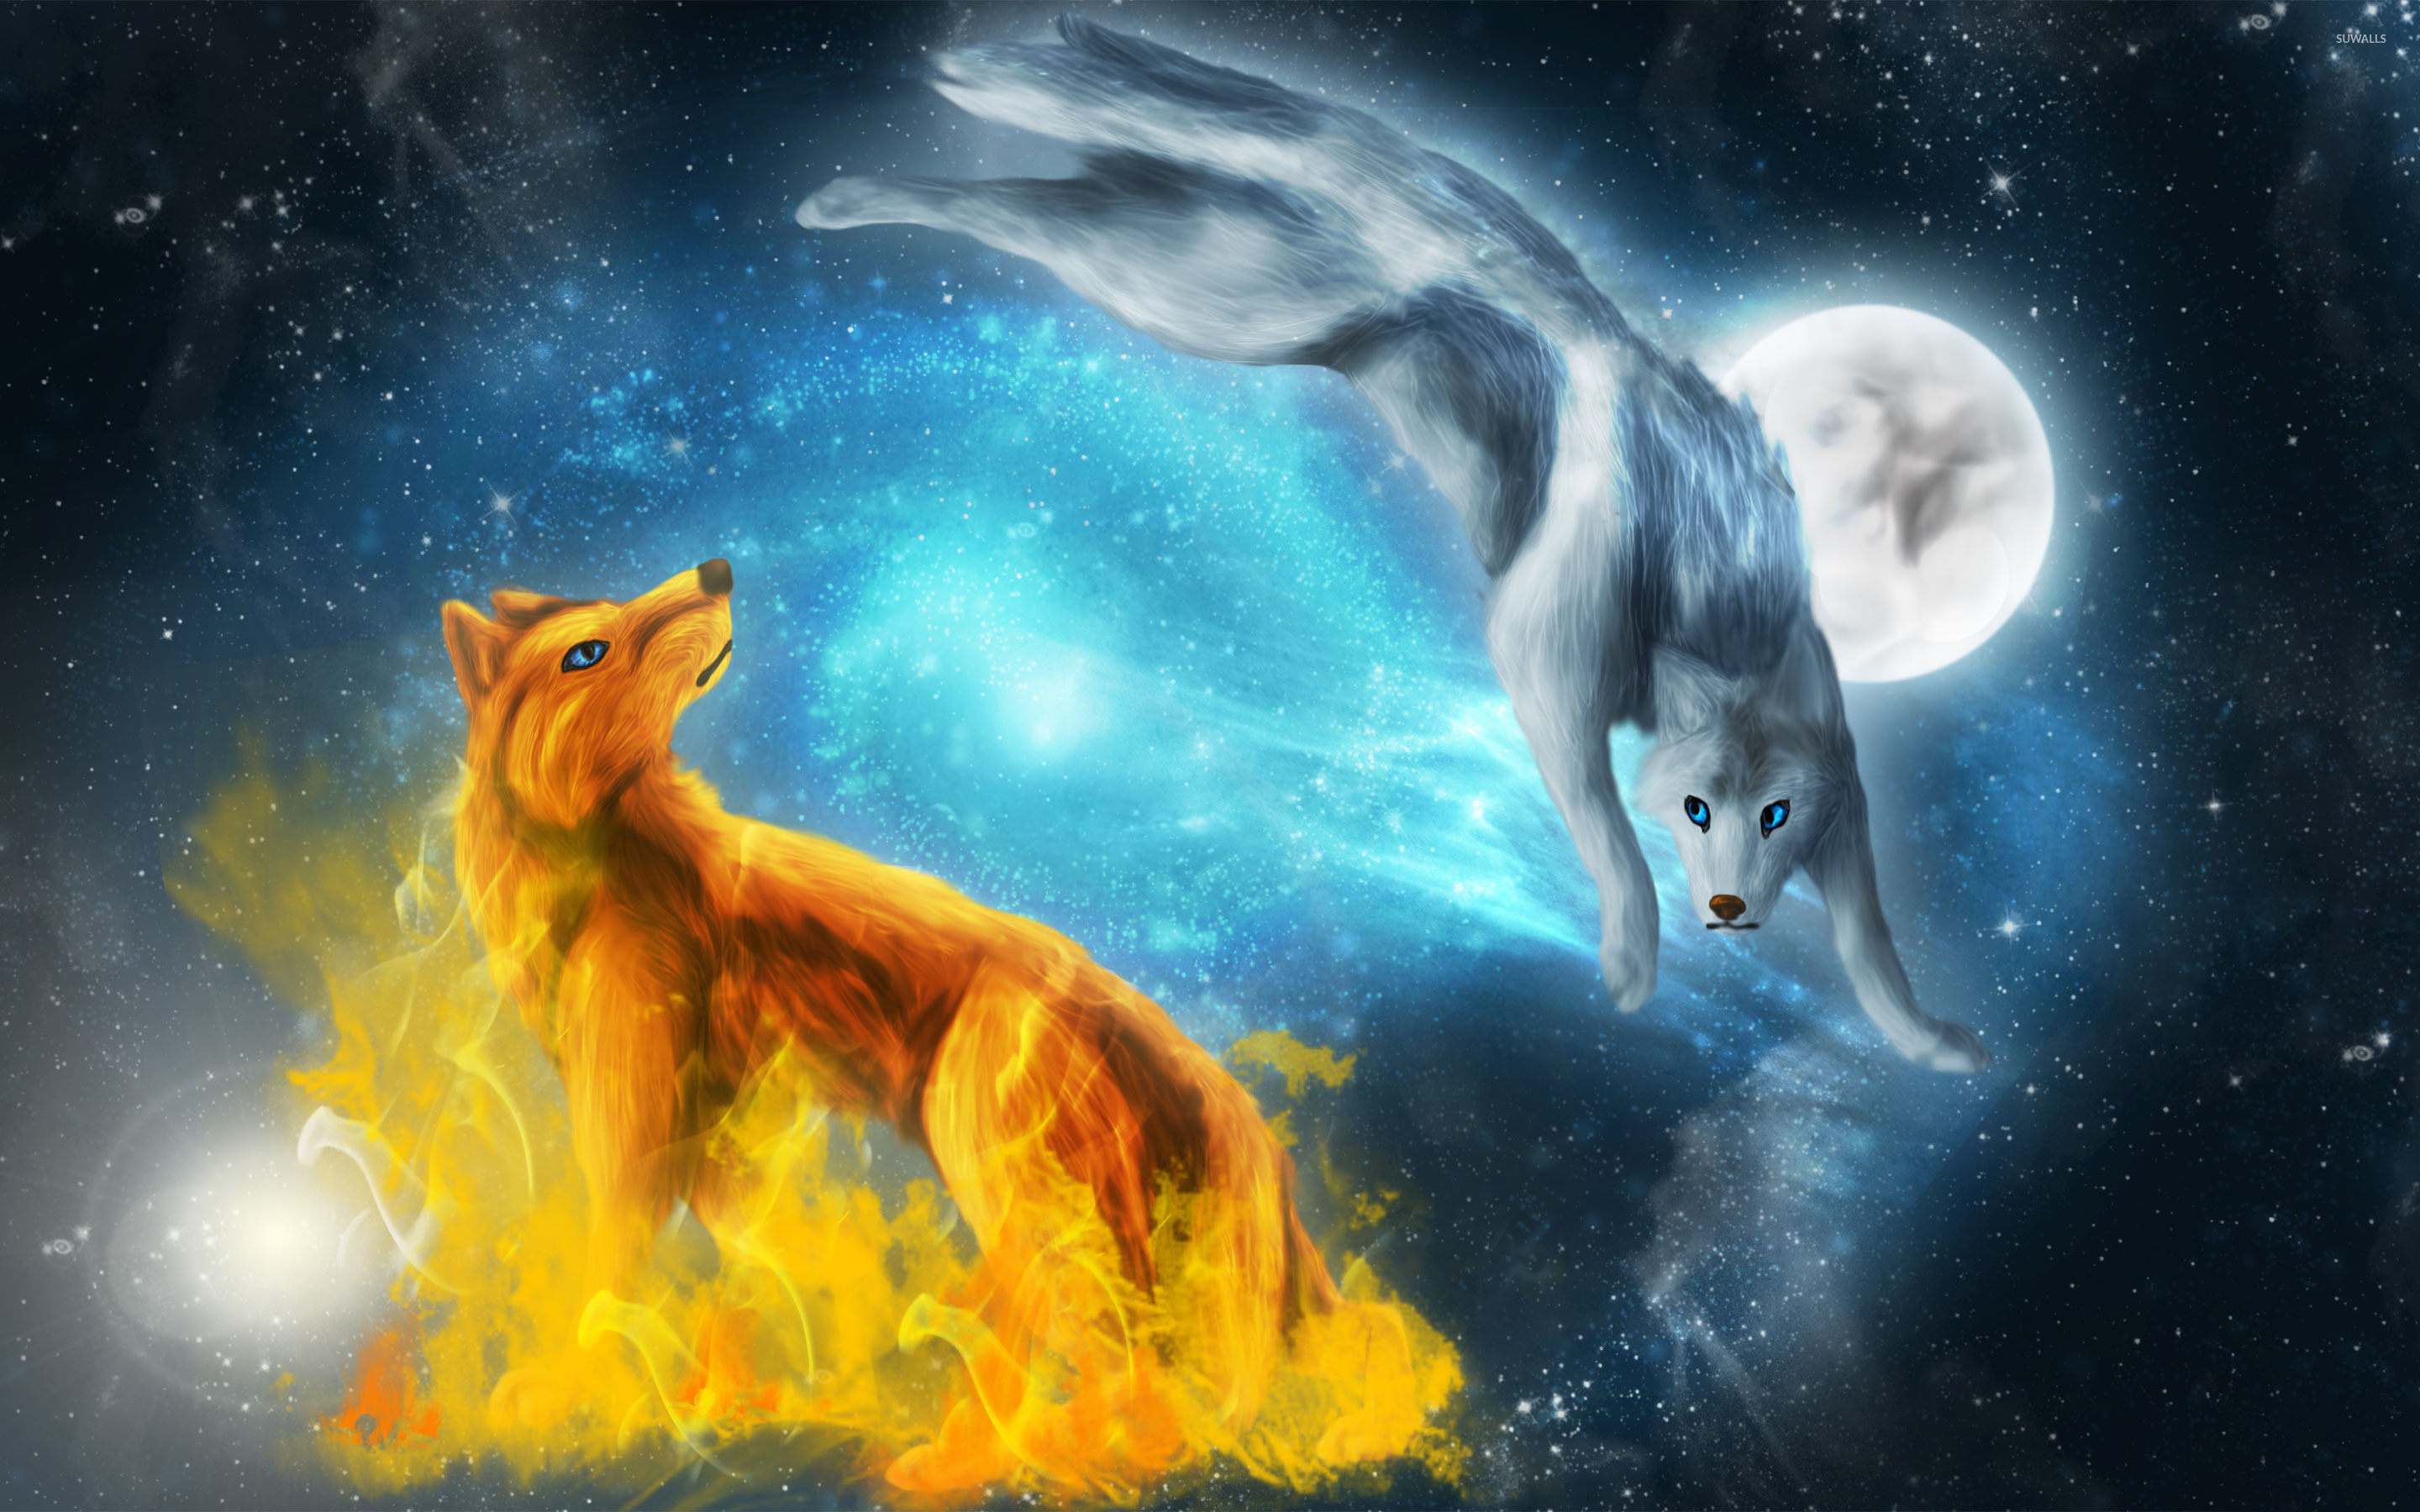 Fire and ice wolves wallpaper - Fantasy